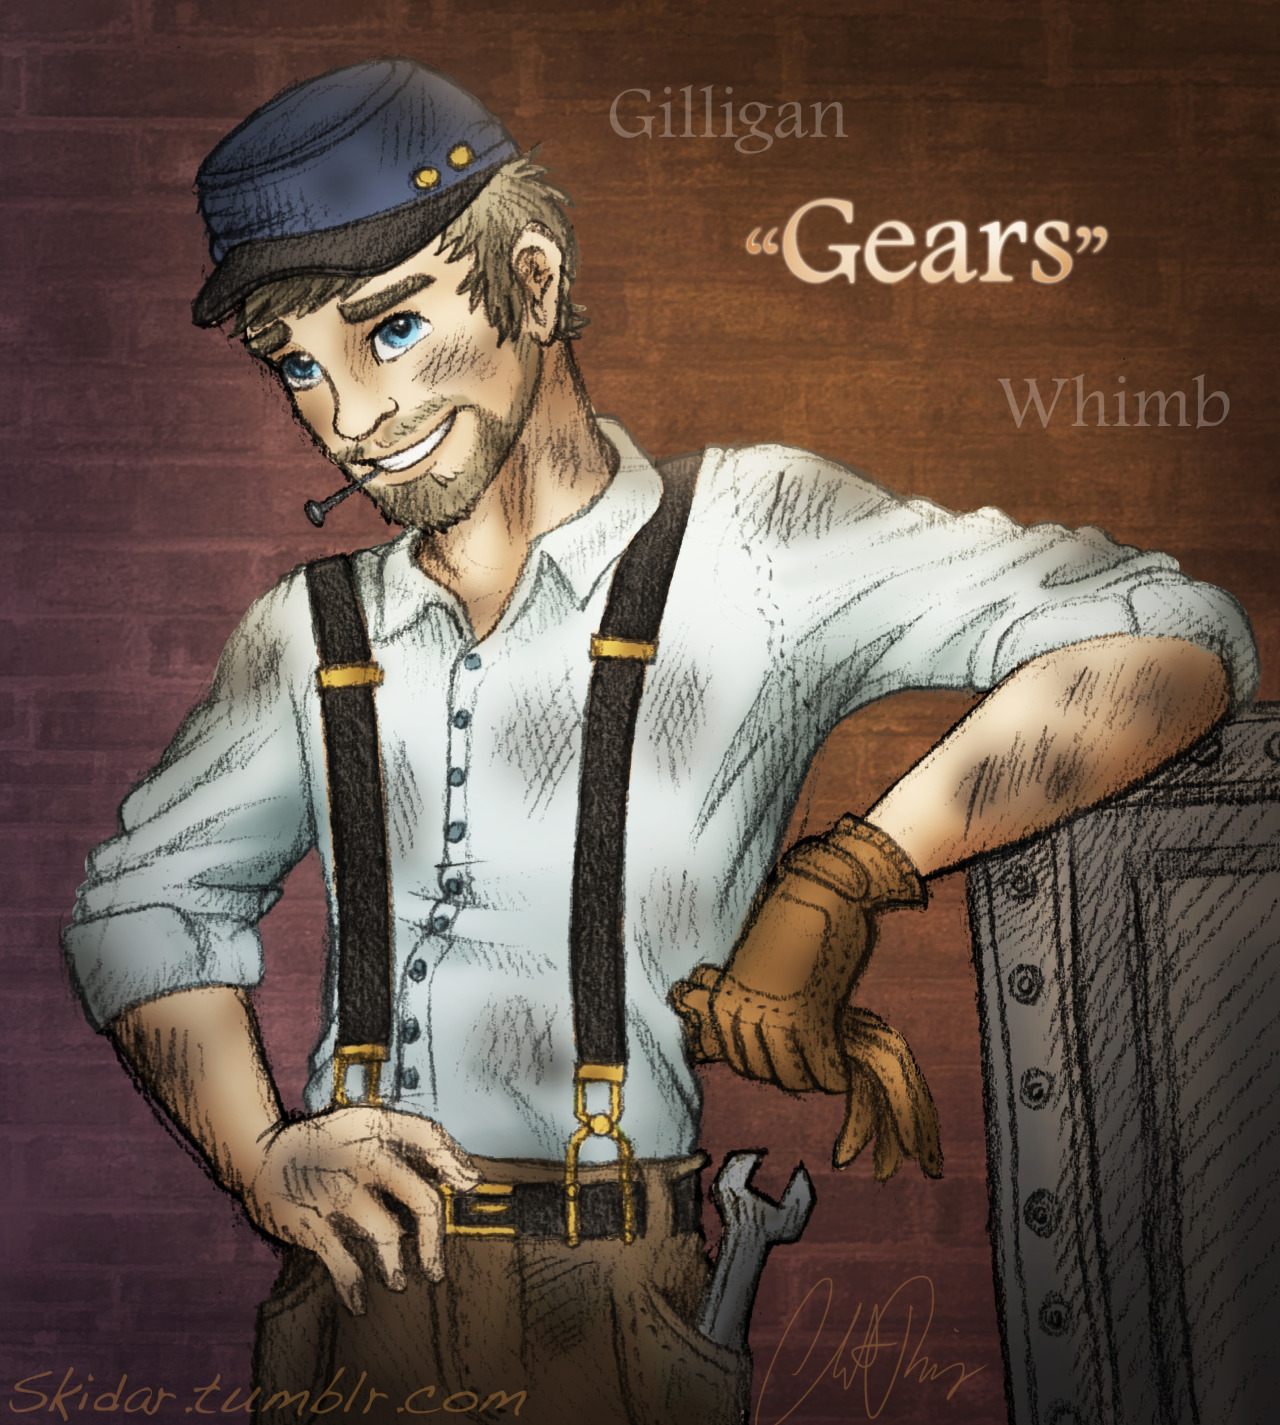 "skidar:  Gilligan ""Gears"" Whimb Humanized -Christine Ridgway/Skidar I humanzied Gears! And is it just me or did he get cuter? ;) My mom says he's more cute as a human but eh, I like mouse-y Gears too :P My lil' factory worker guy <3 Rockin' the suspenders and the union cavalry cap.   GEARSSSS my babbyyyyy <3 He's beautiful"